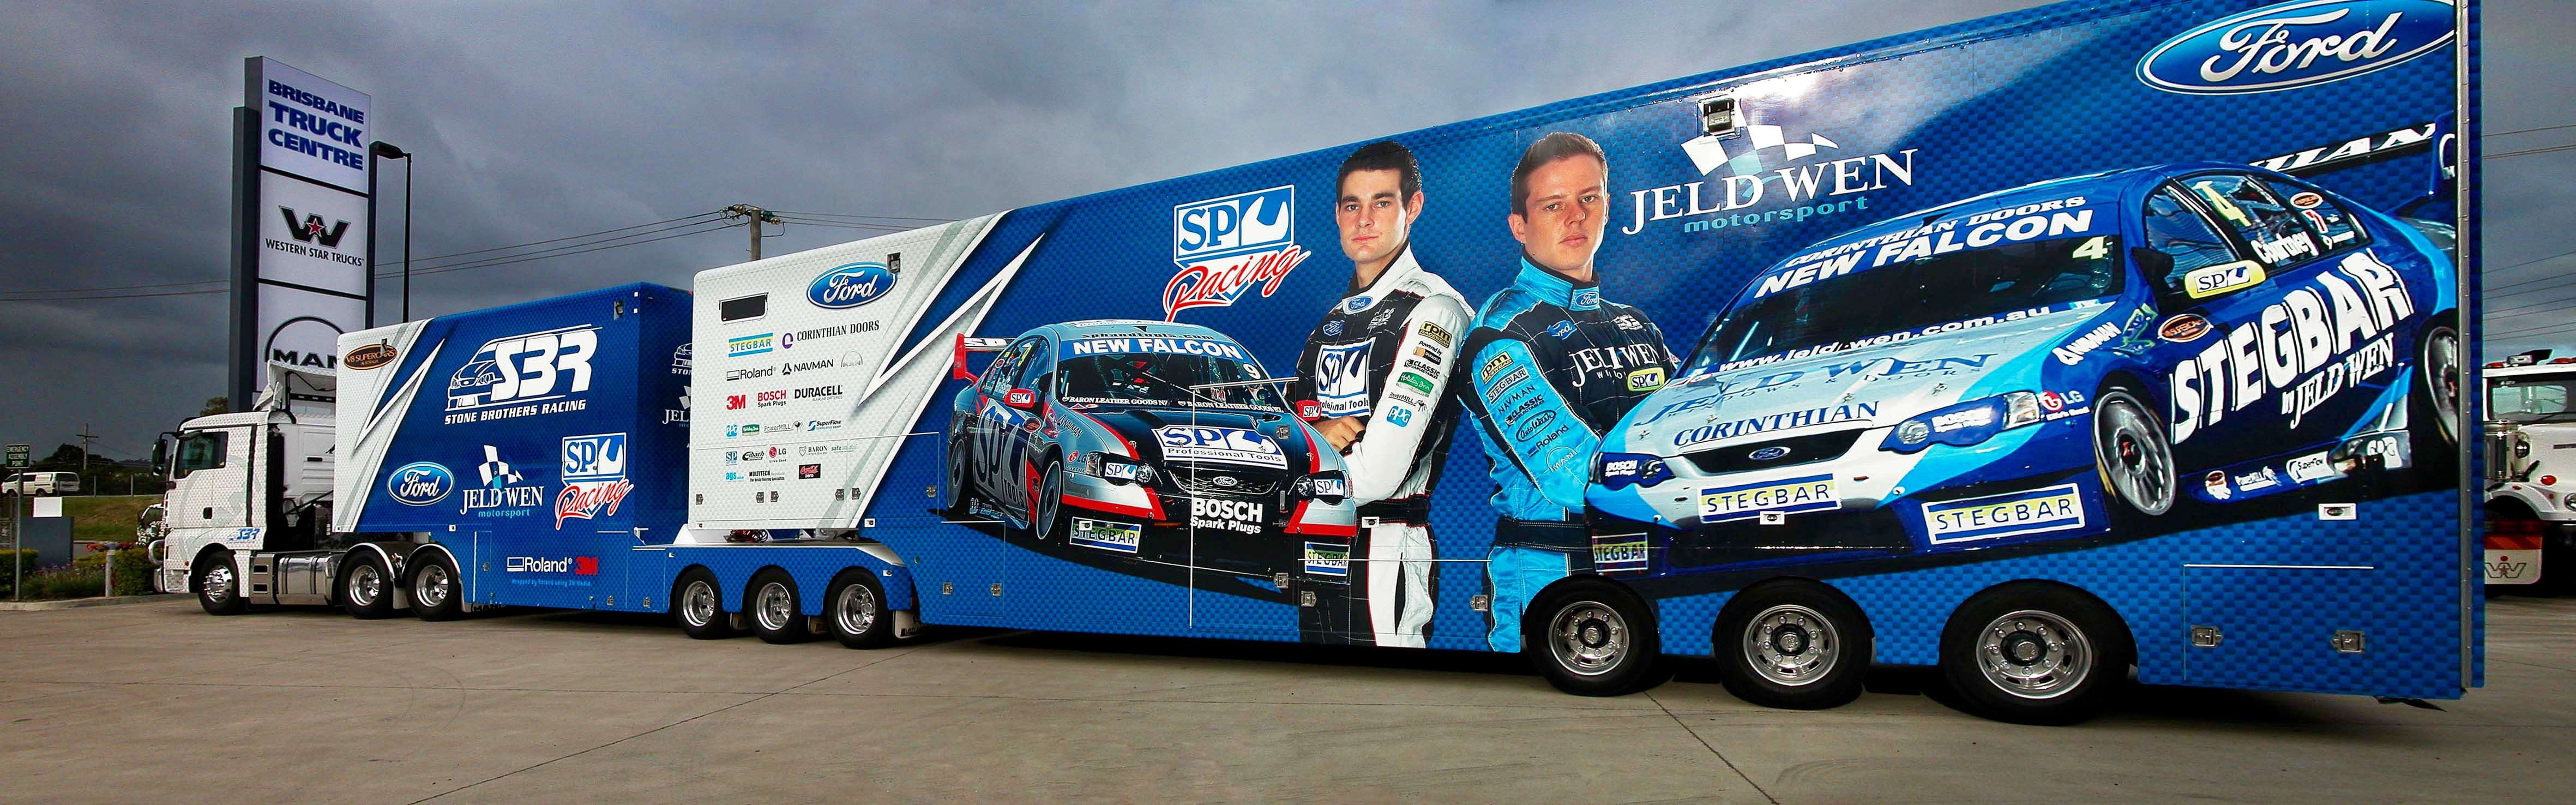 Ford Transporter Hauler Jeld Wen Stone Brothers Racing Super Cars V8 Supercars Race Cars